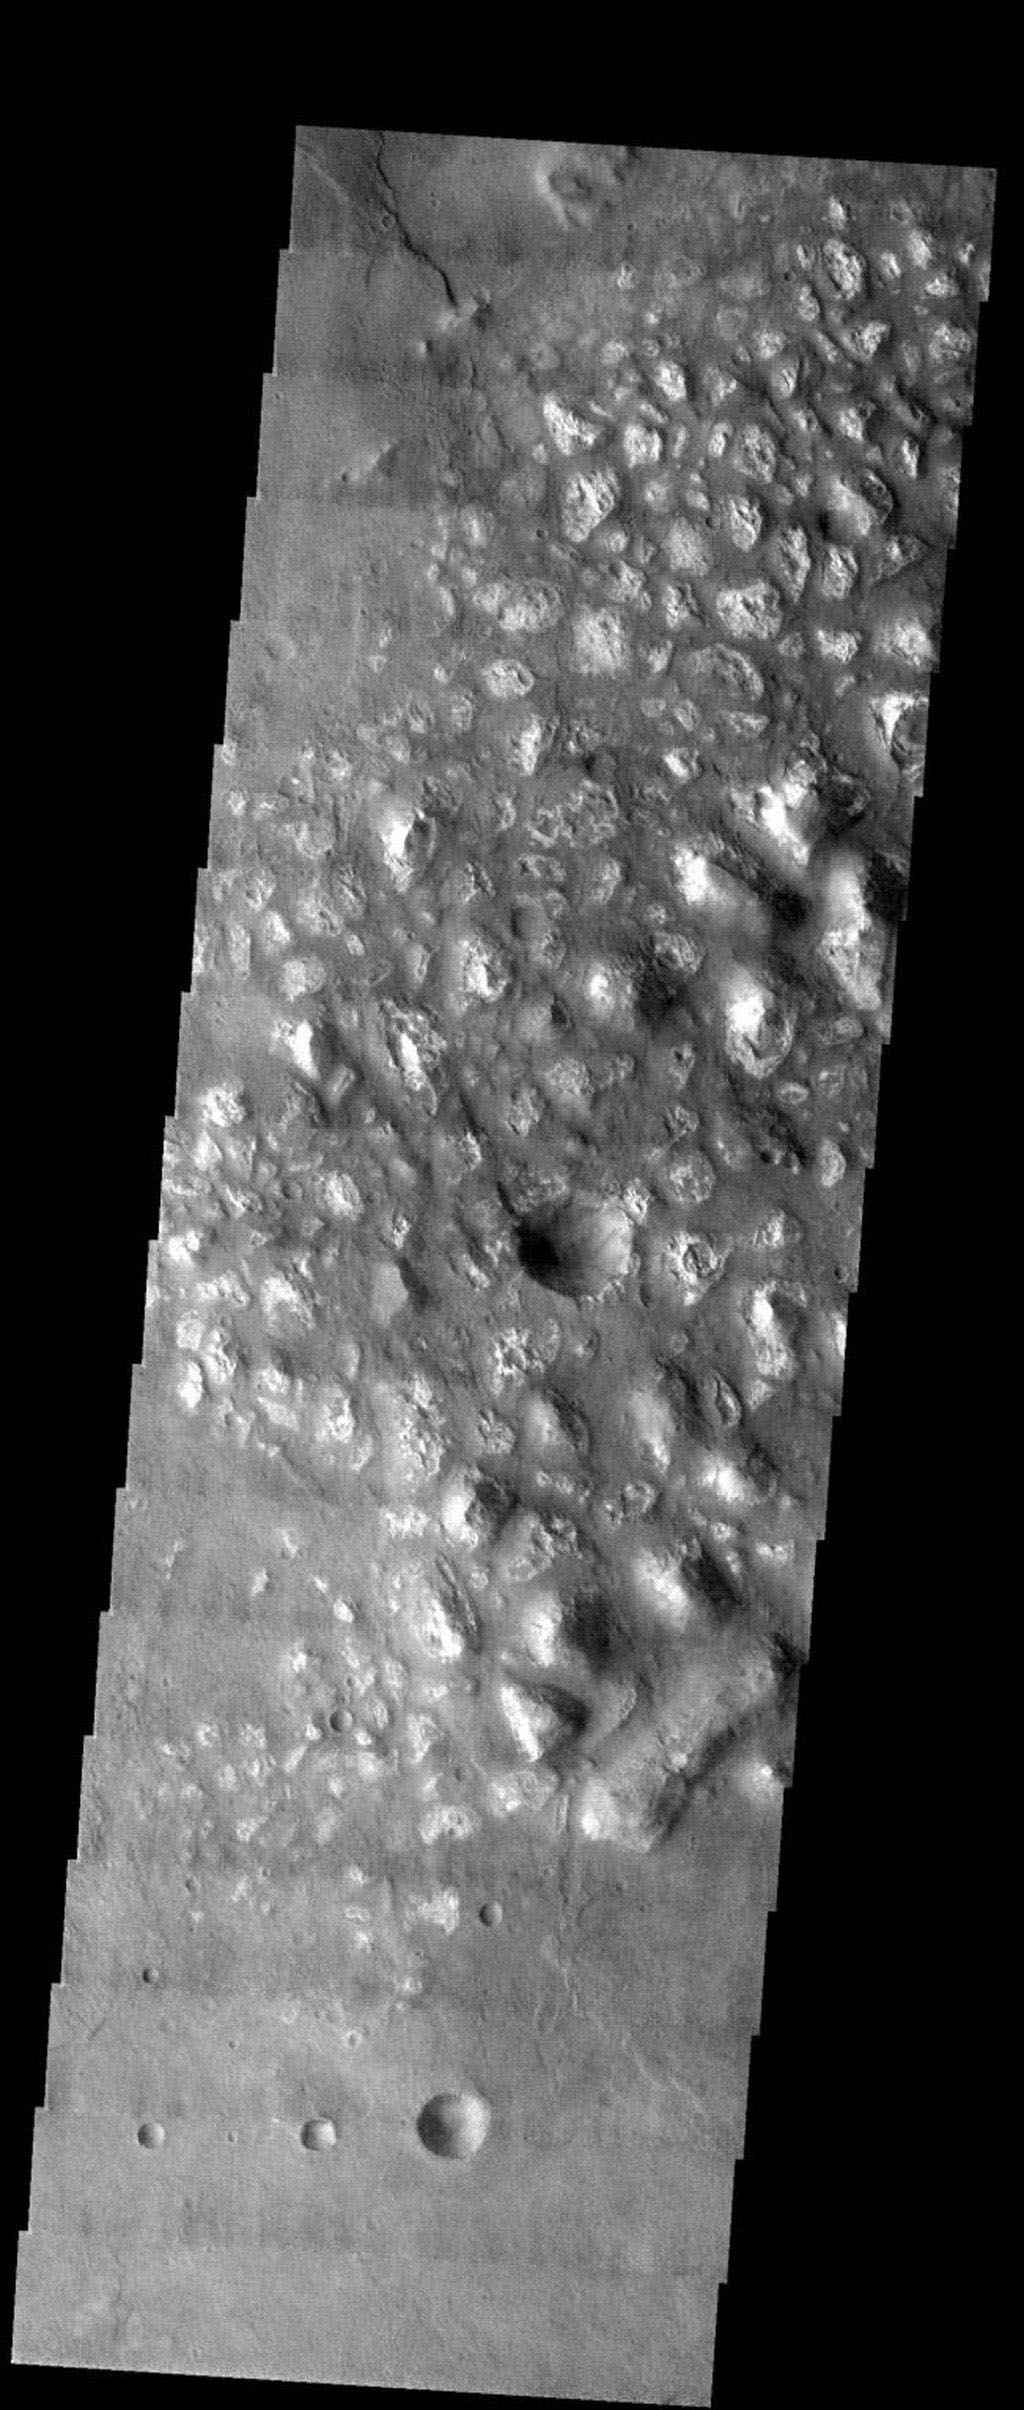 NASA's Mars Odyssey spacecraft captured this image in August 2003, showing knobby terrain is in the southern highlands on Mars.